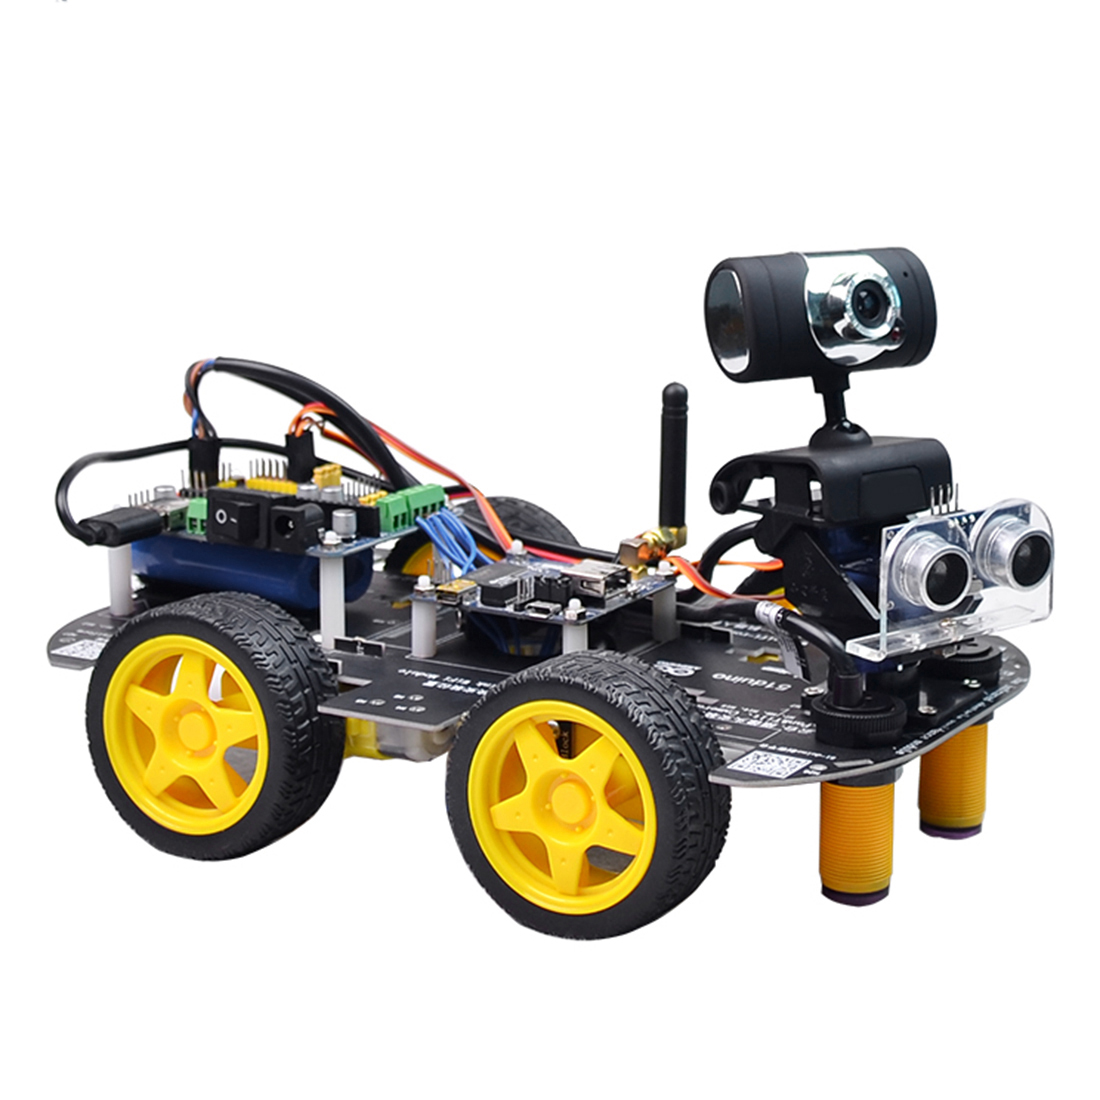 DIY Programmable Robot Wifi Steam Educational Car With Graphic Programming XR BLOCK Linux For Raspberry Pi 4(2G)(Line Patrol)